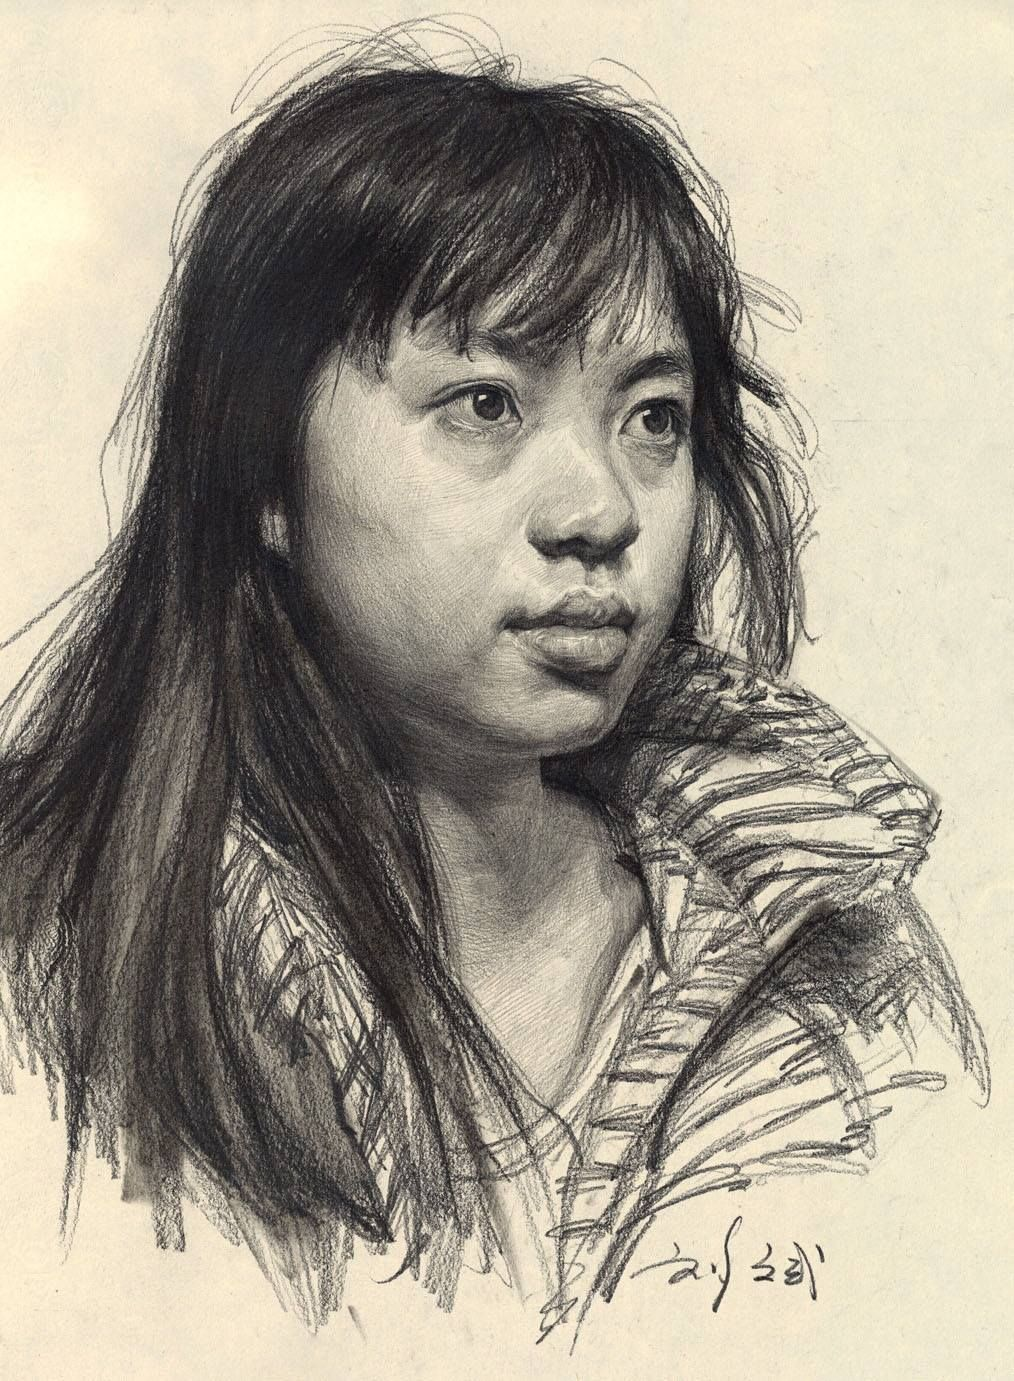 Asian female portrait drawing MY portrait drawings